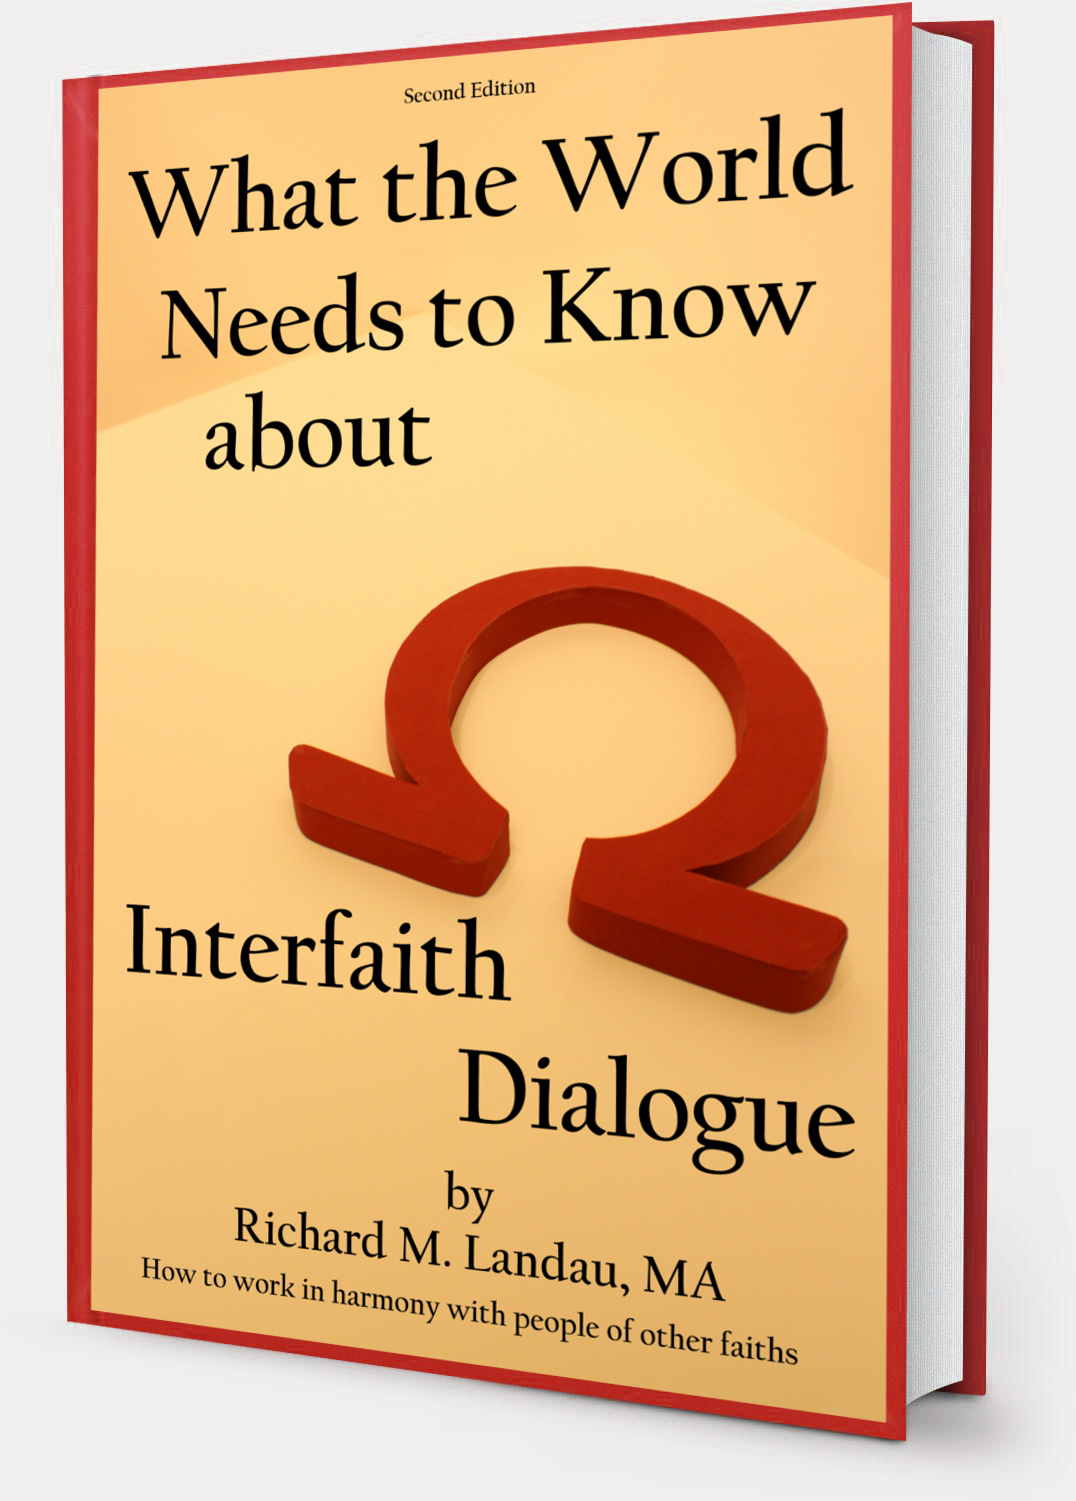 What the World Needs to Know about Interfaith Dialogue